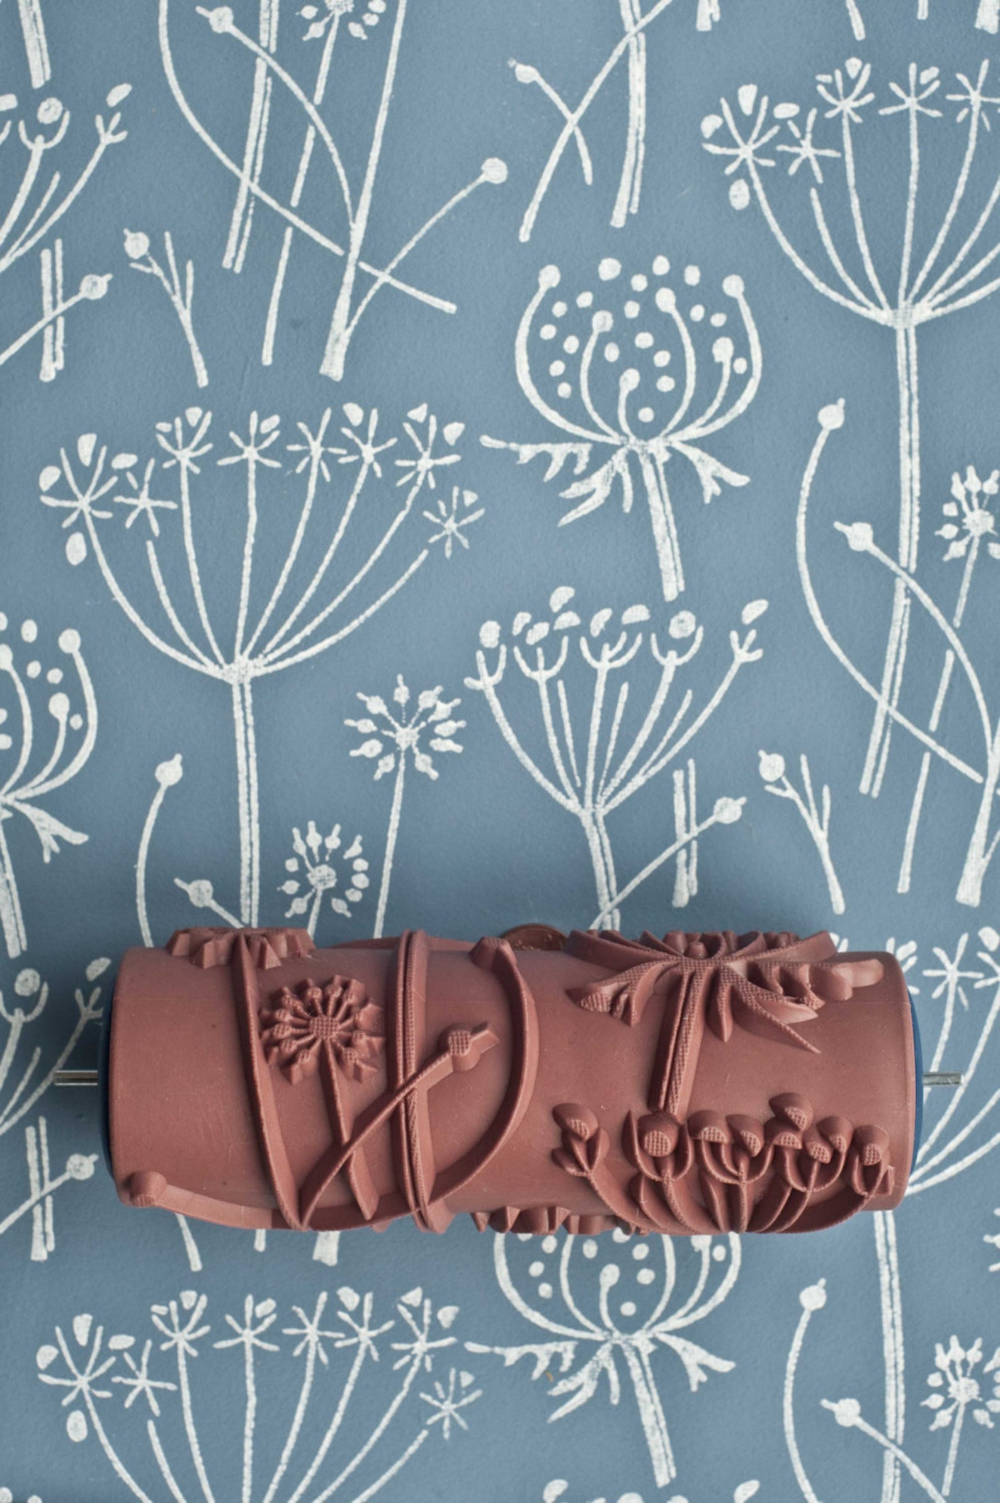 Tussock Patterned Paint Roller In 2020 With Images Patterned